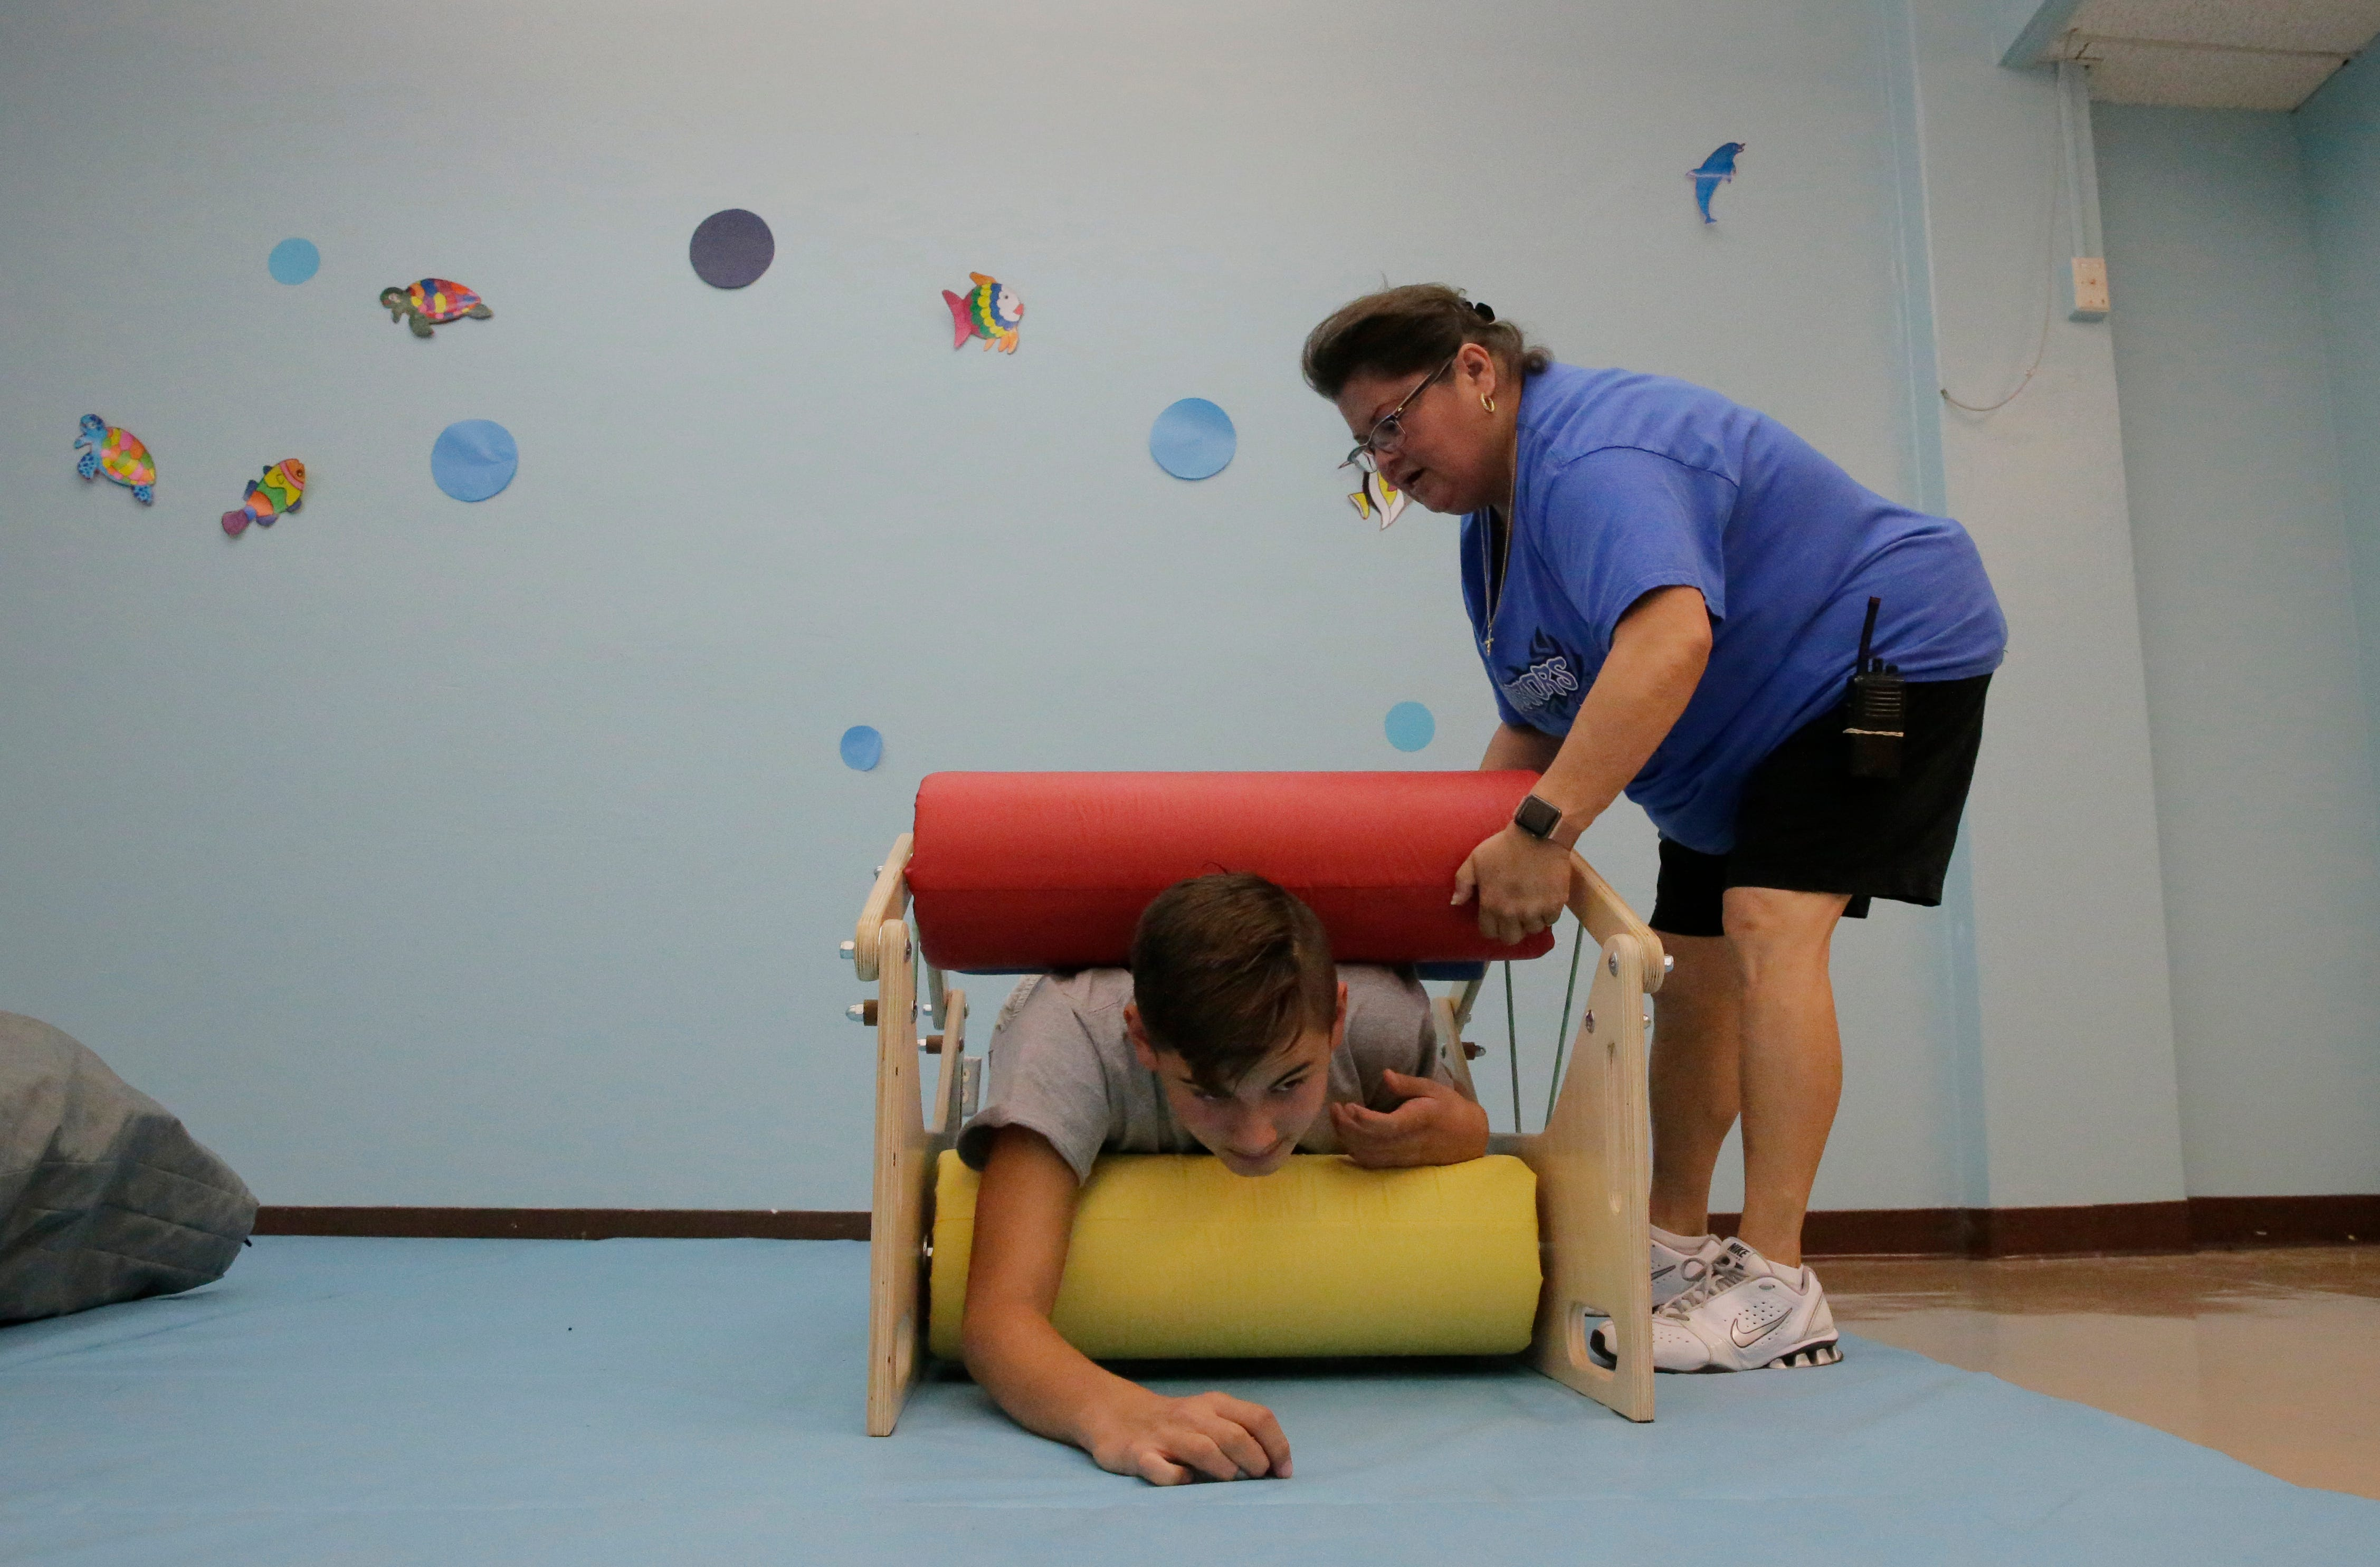 Rooms with swings, disco balls help El Paso students with autism, sensory disorders | El Paso Times